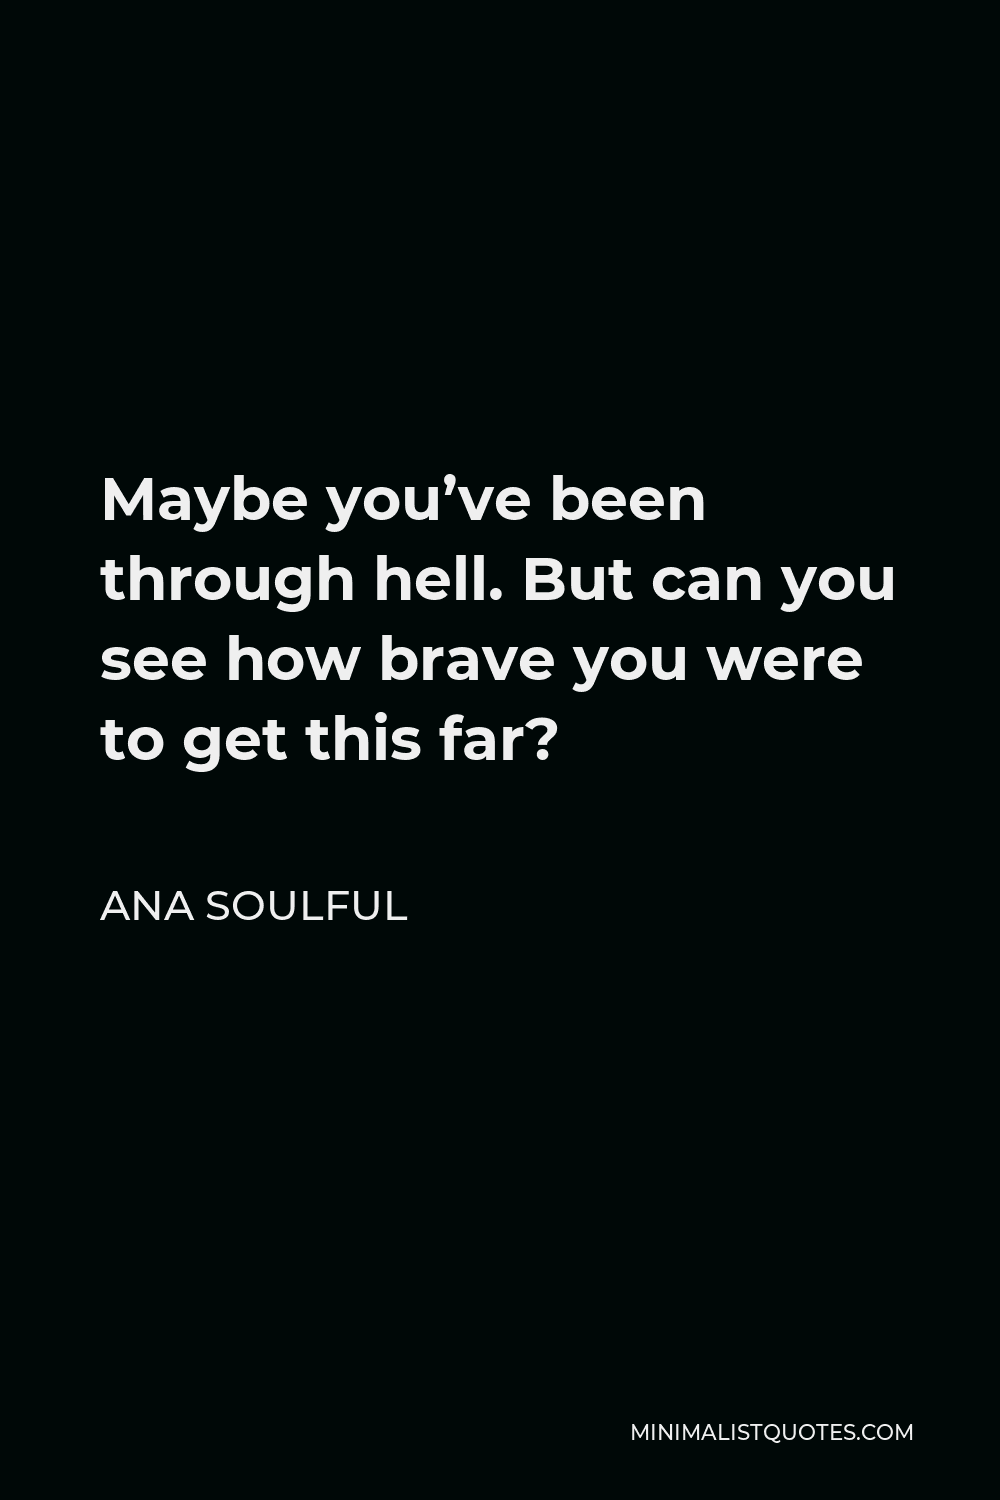 Ana Soulful Quote - Maybe you've been through hell. But can you see how brave you were to get this far?